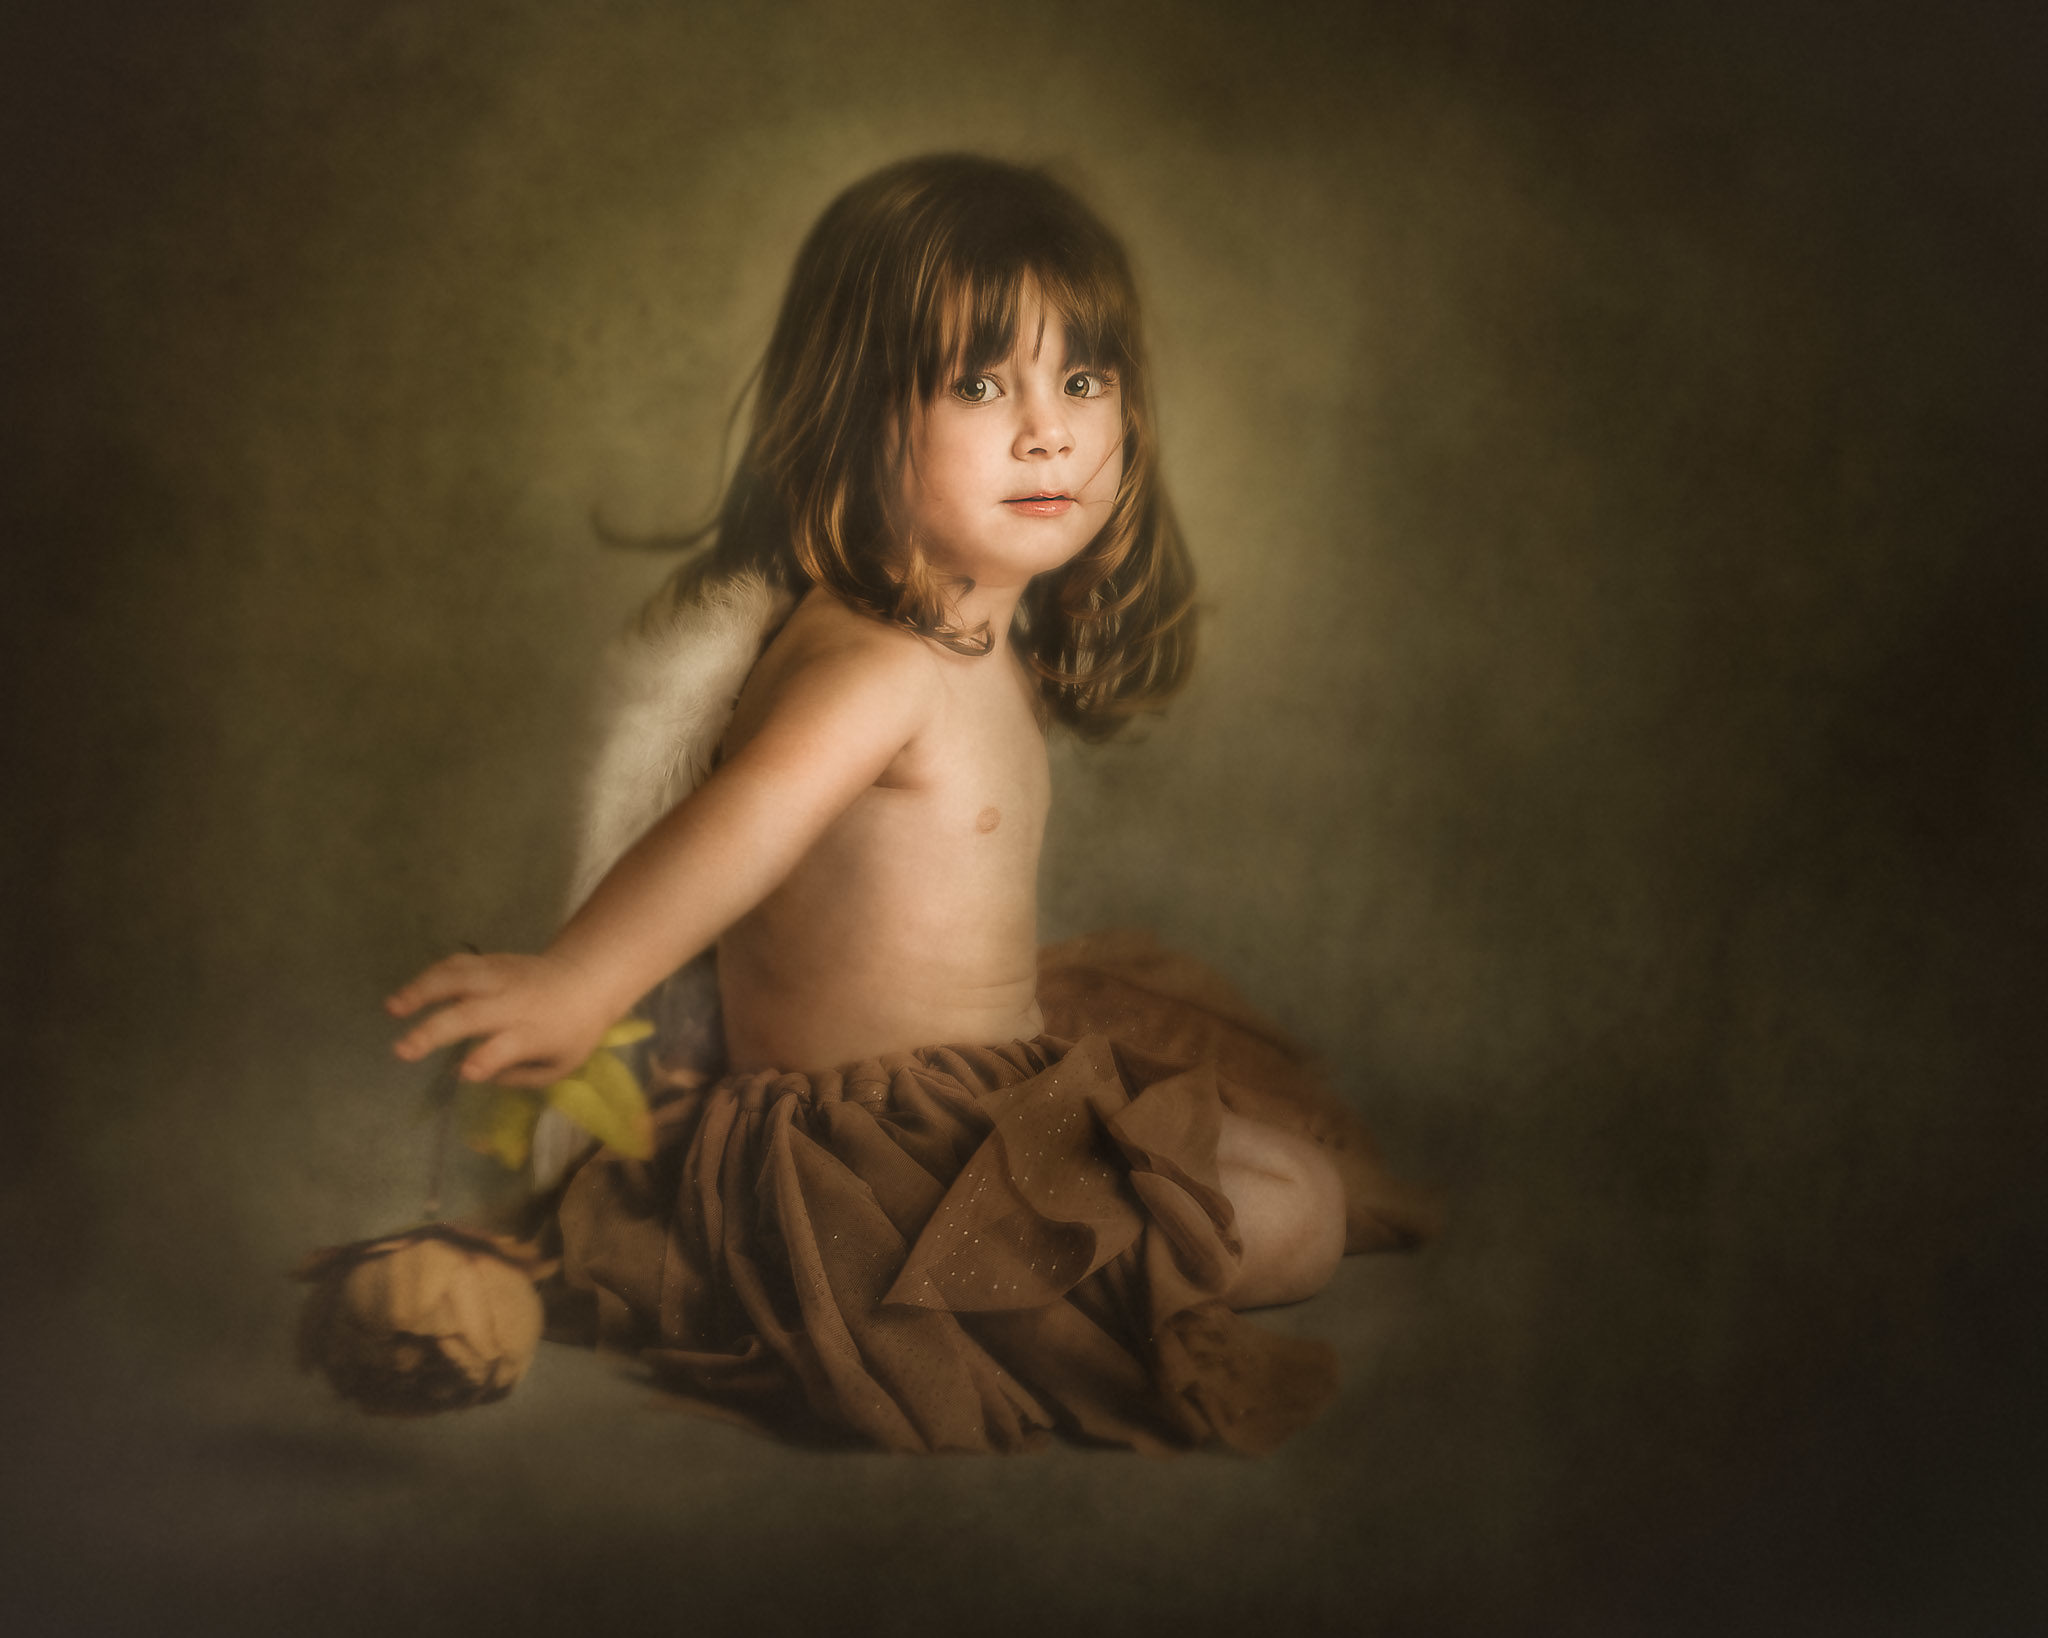 NOA (2 AÑOS) – LITTLE ANGELS 2018